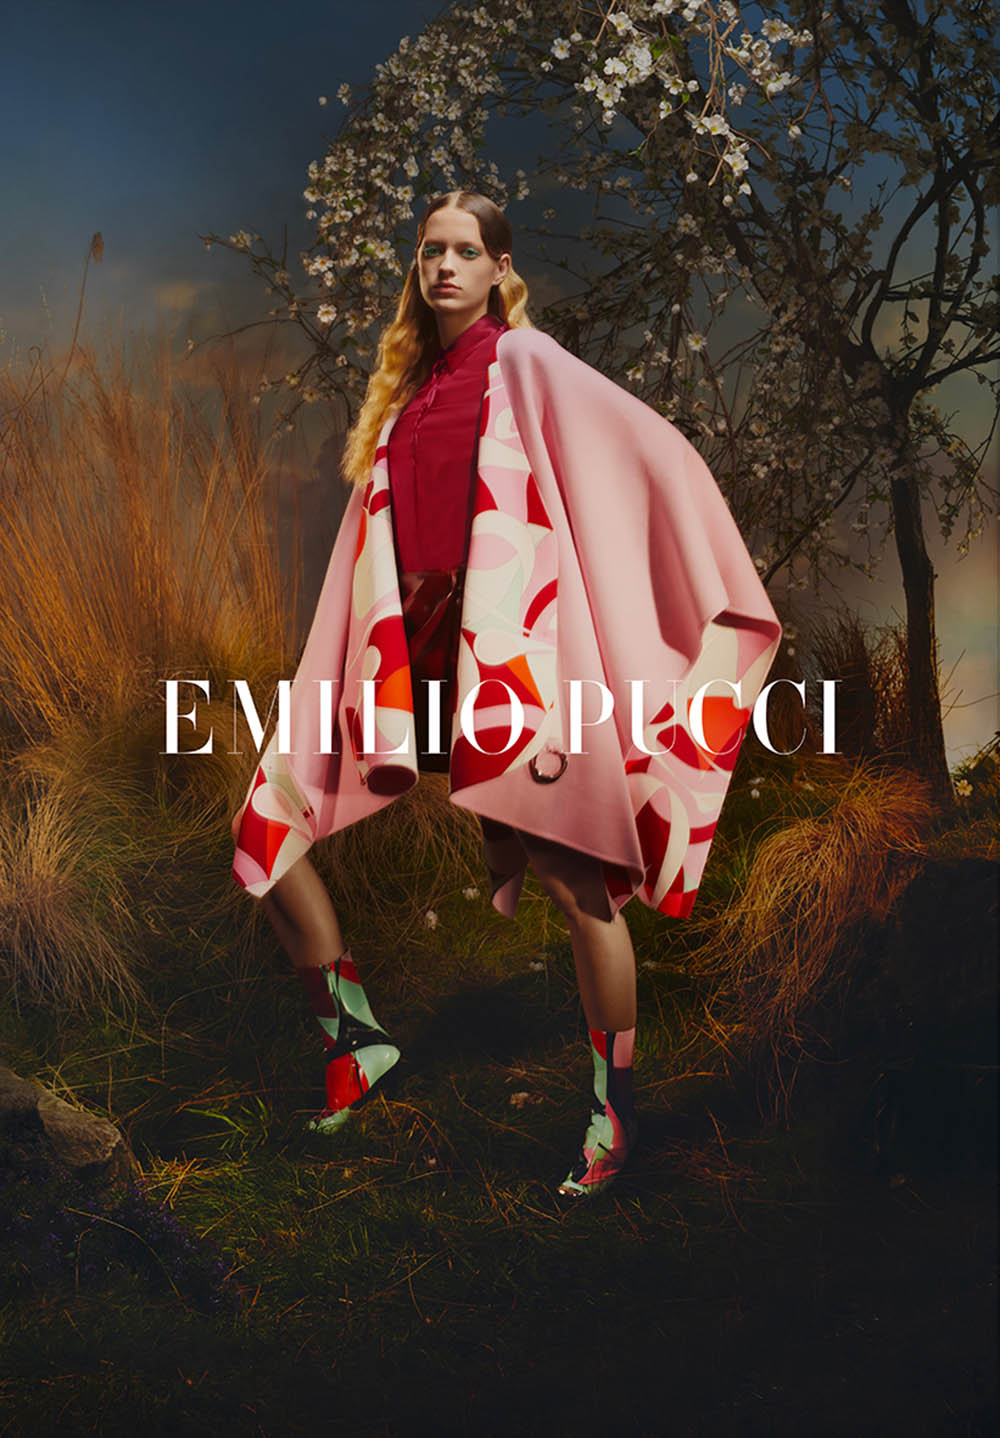 Emilio Pucci Fall Winter 2019 Campaign